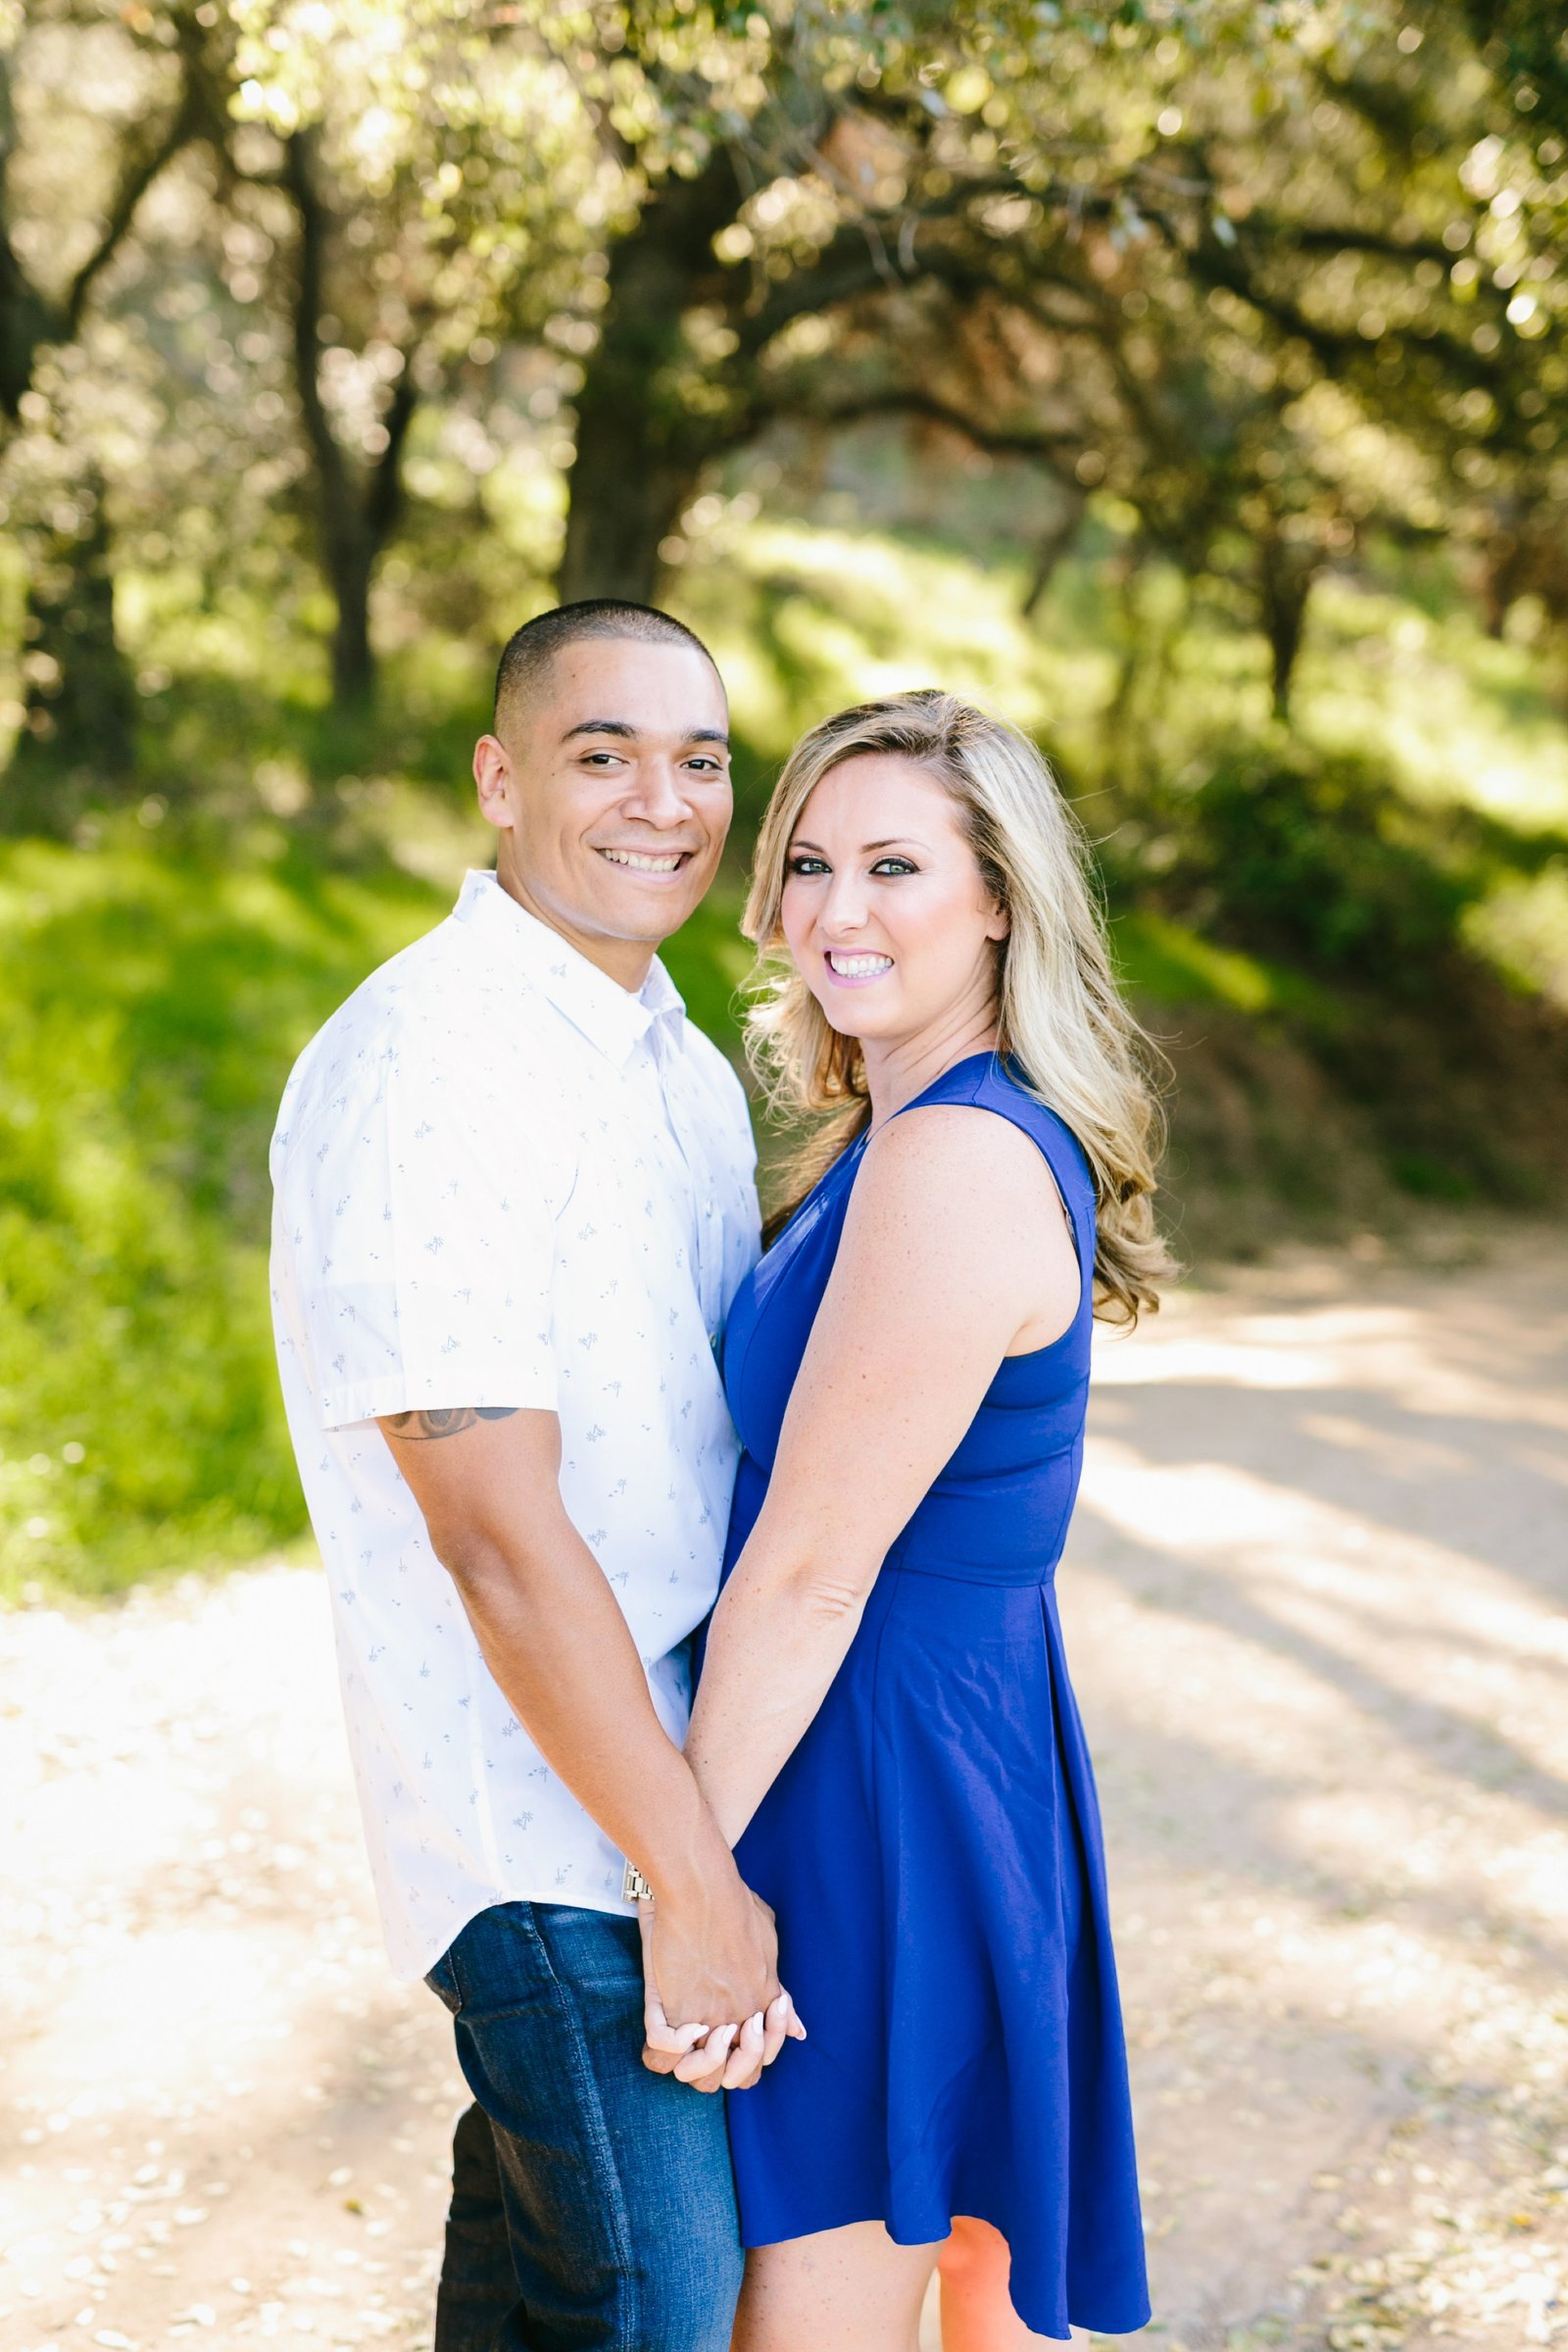 Engagement Photos-Jodee Debes Photography-116